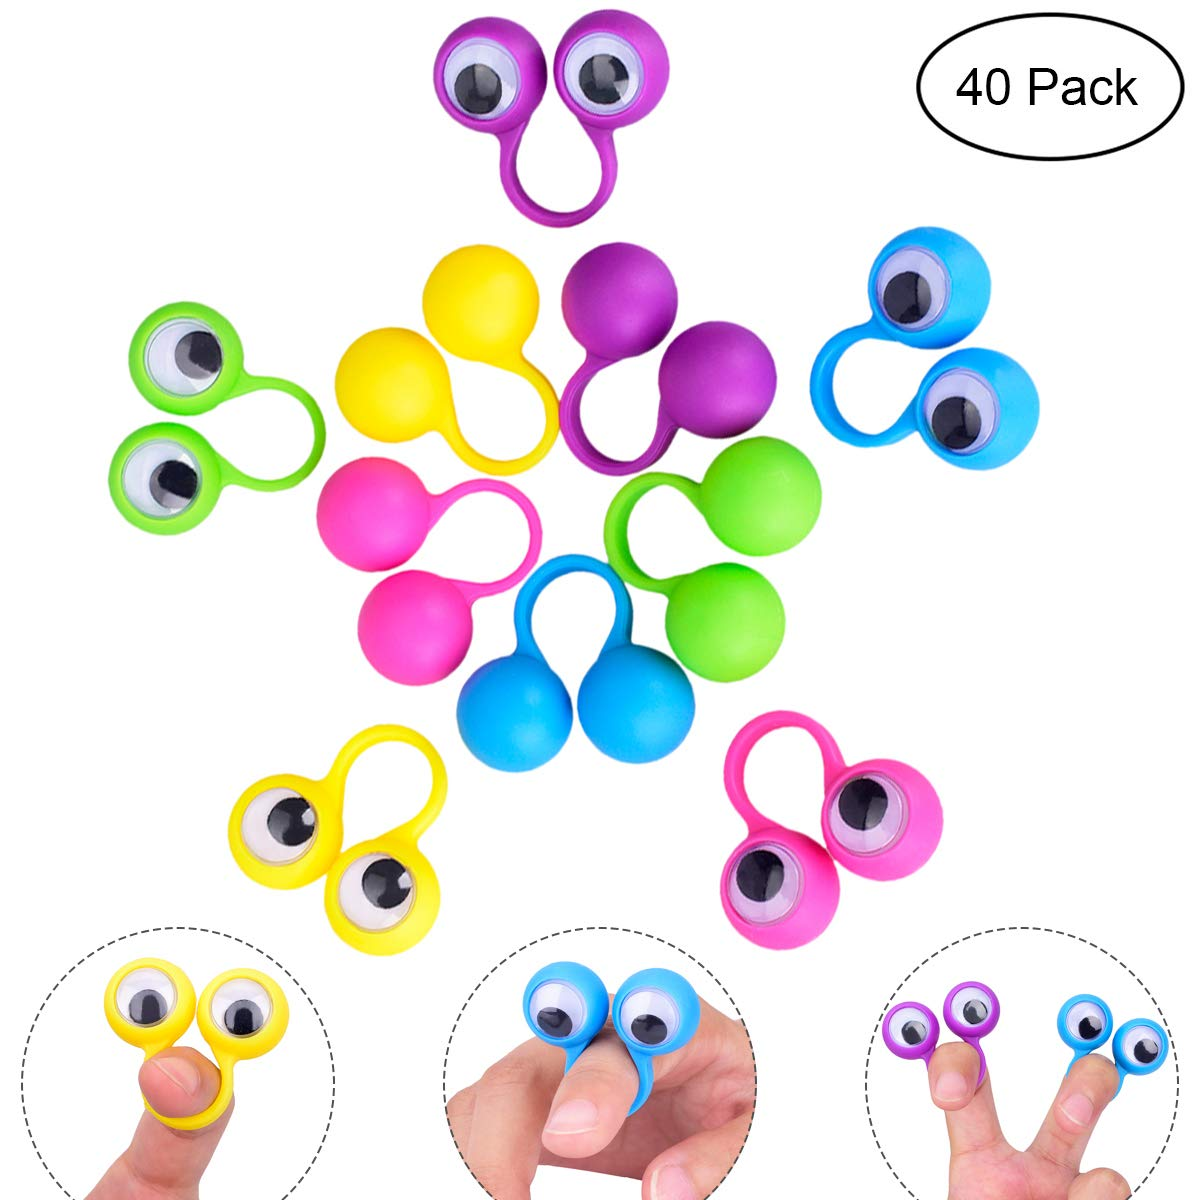 Eyeball clipart puppet. Amazon com youngrich pieces